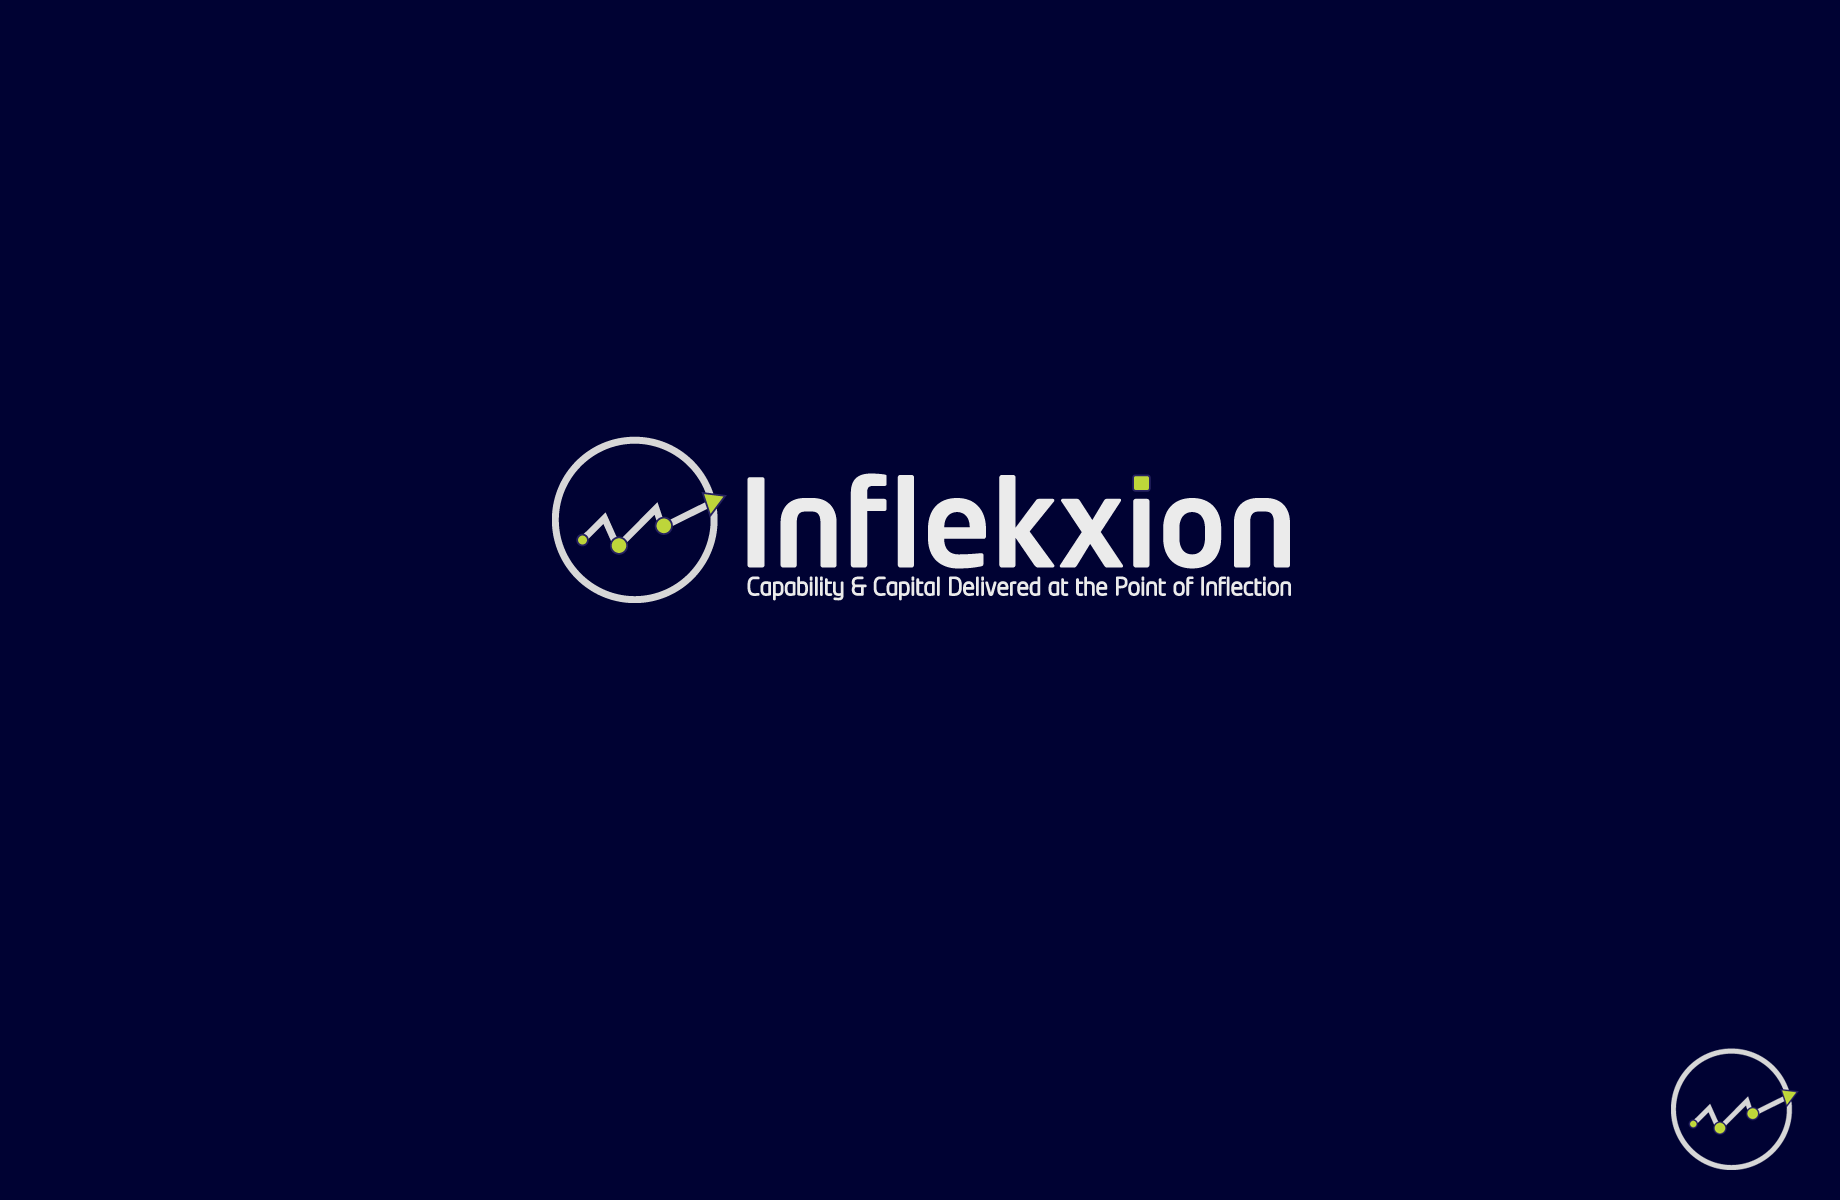 Logo Design by Jan Chua - Entry No. 76 in the Logo Design Contest Professional Logo Design for Inflekxion.